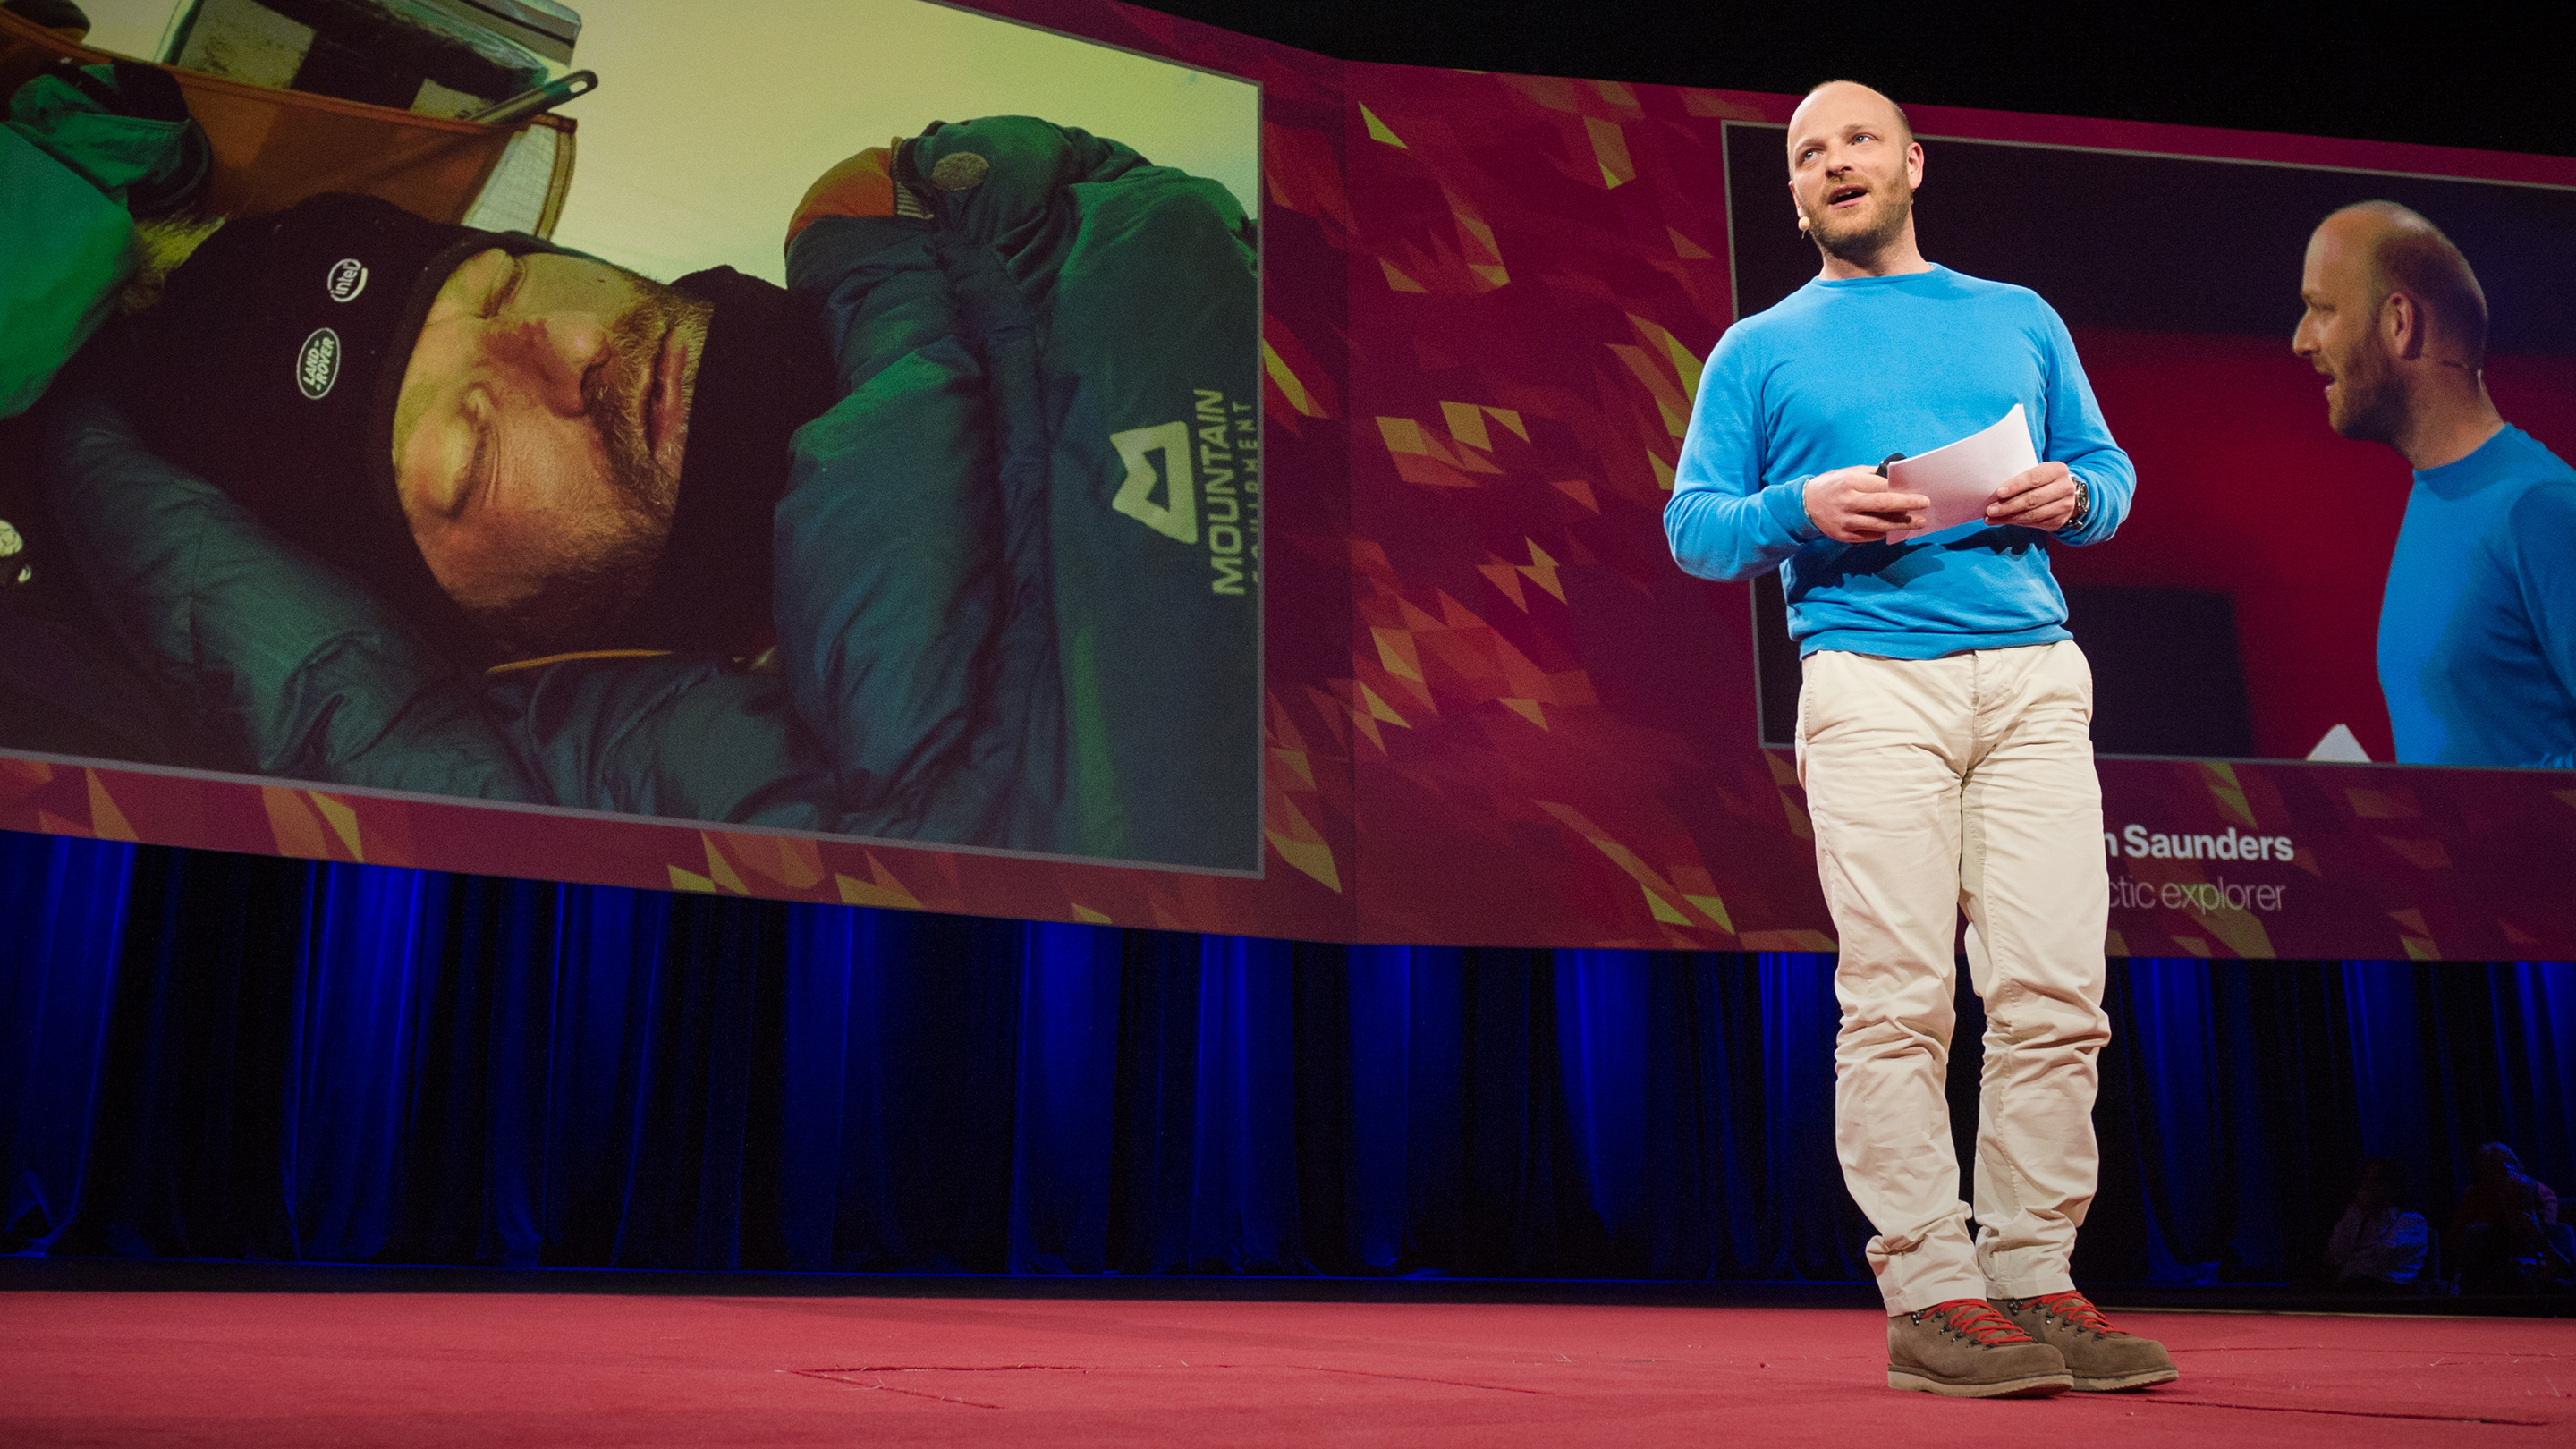 Ben Saunders: To the South Pole and back — the hardest 105 days of my life thumbnail